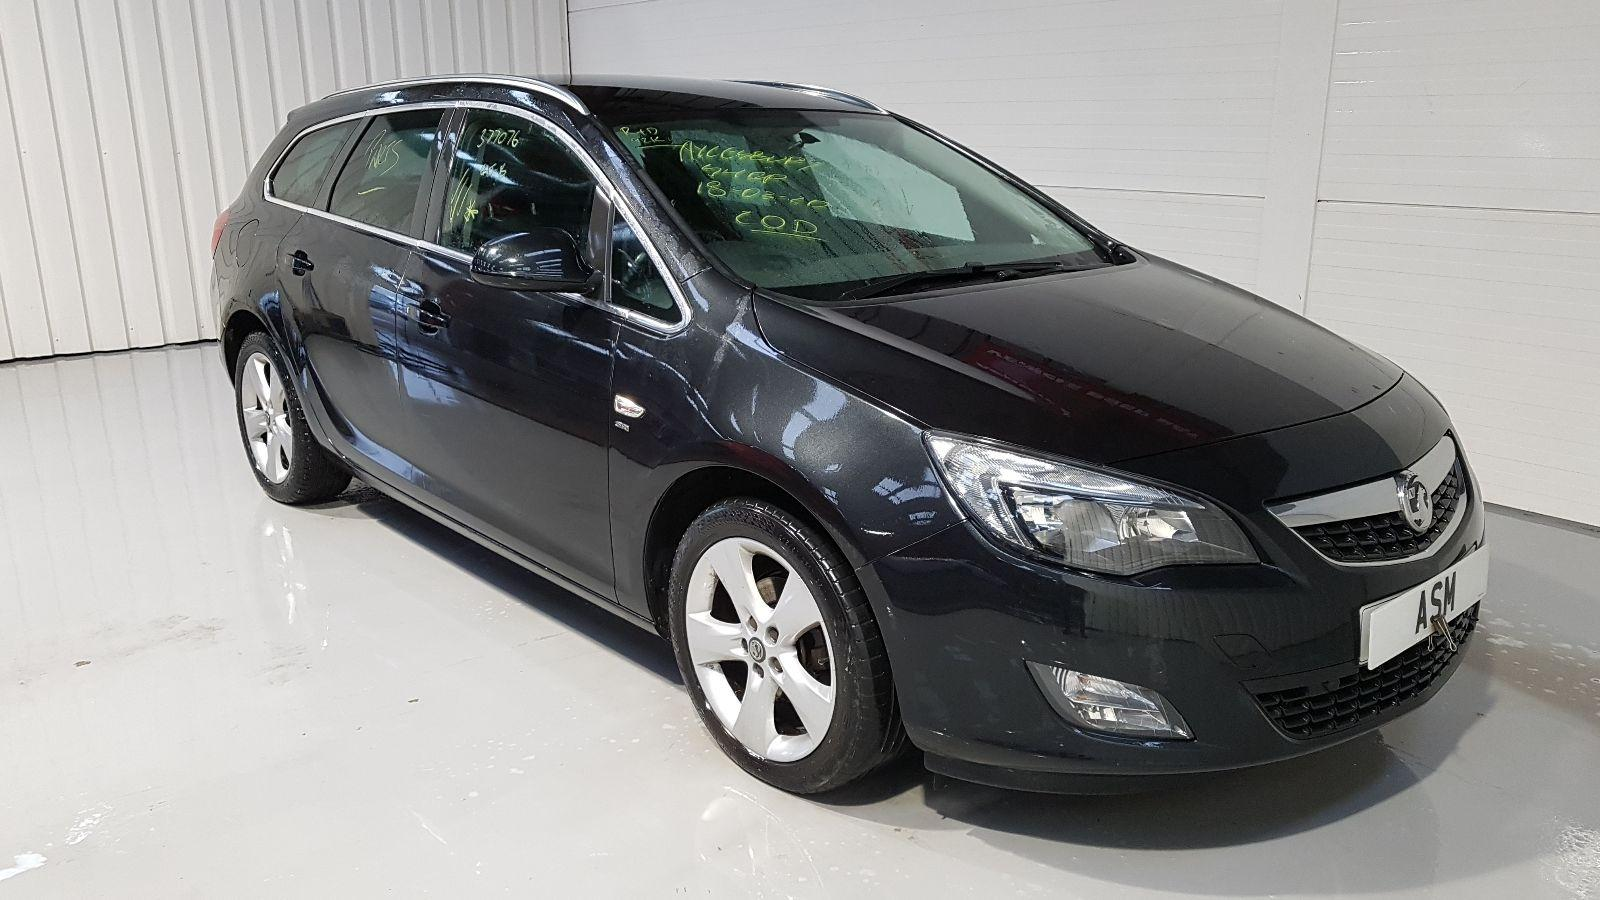 Image for a 2012 Vauxhall Astra 1.6 Petrol A16XER Engine